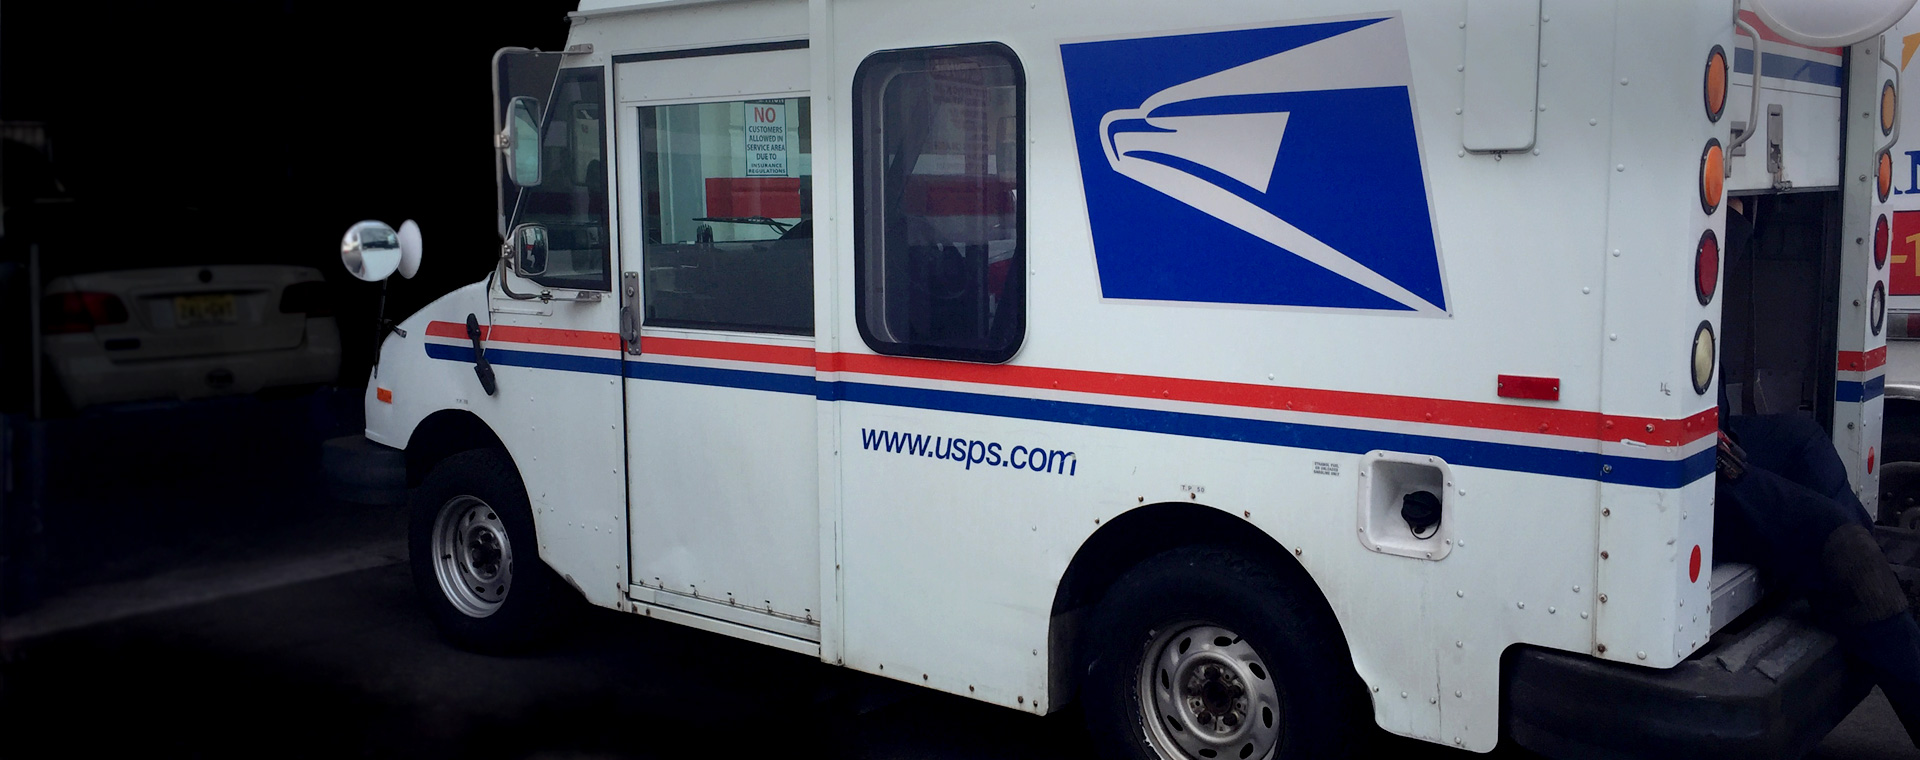 We Service USPS Fleet Vehicles